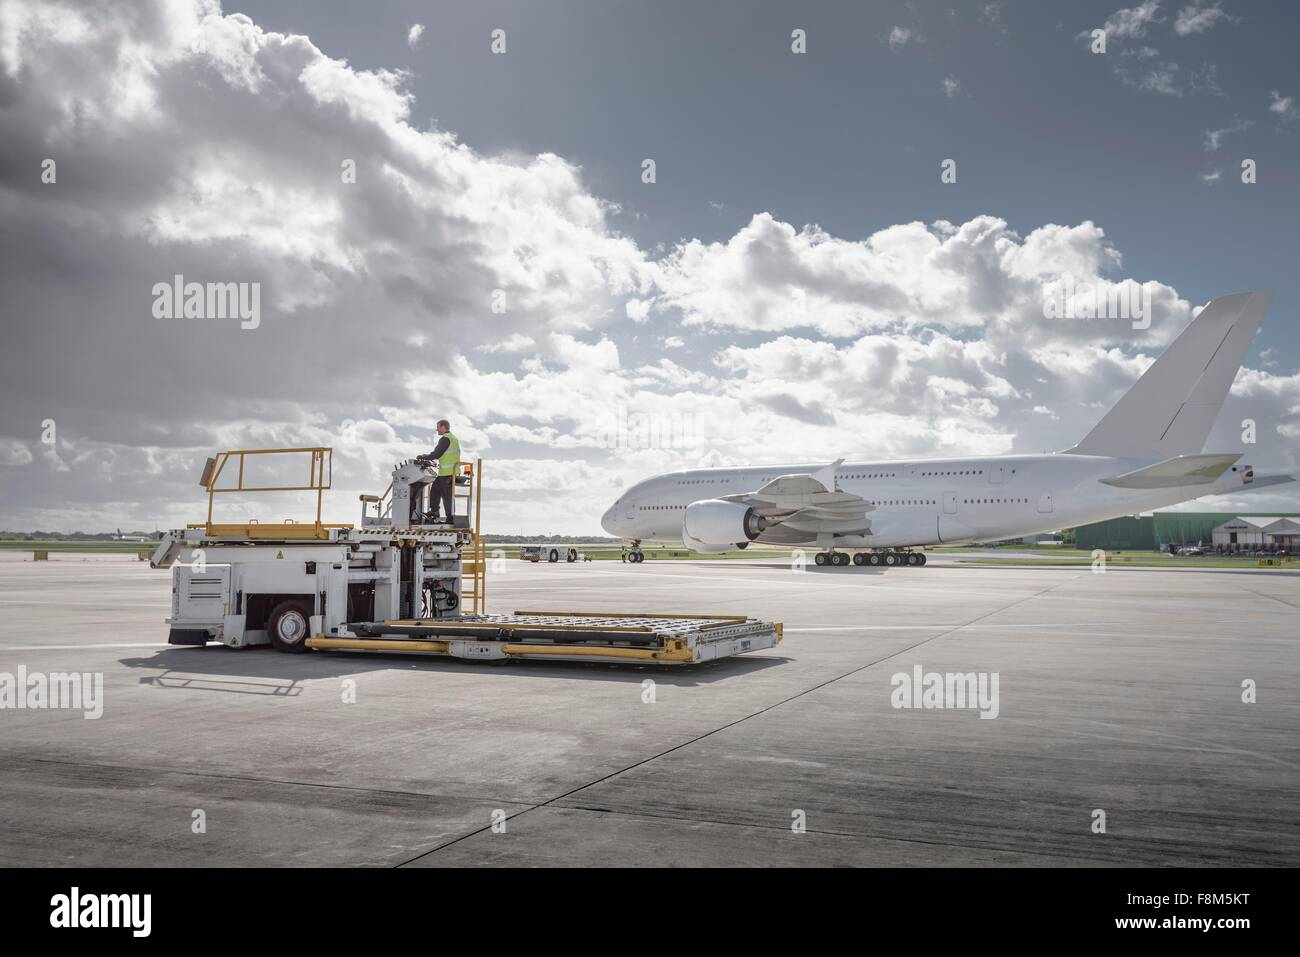 Freight handling machine with A380 aircraft on runway - Stock Image